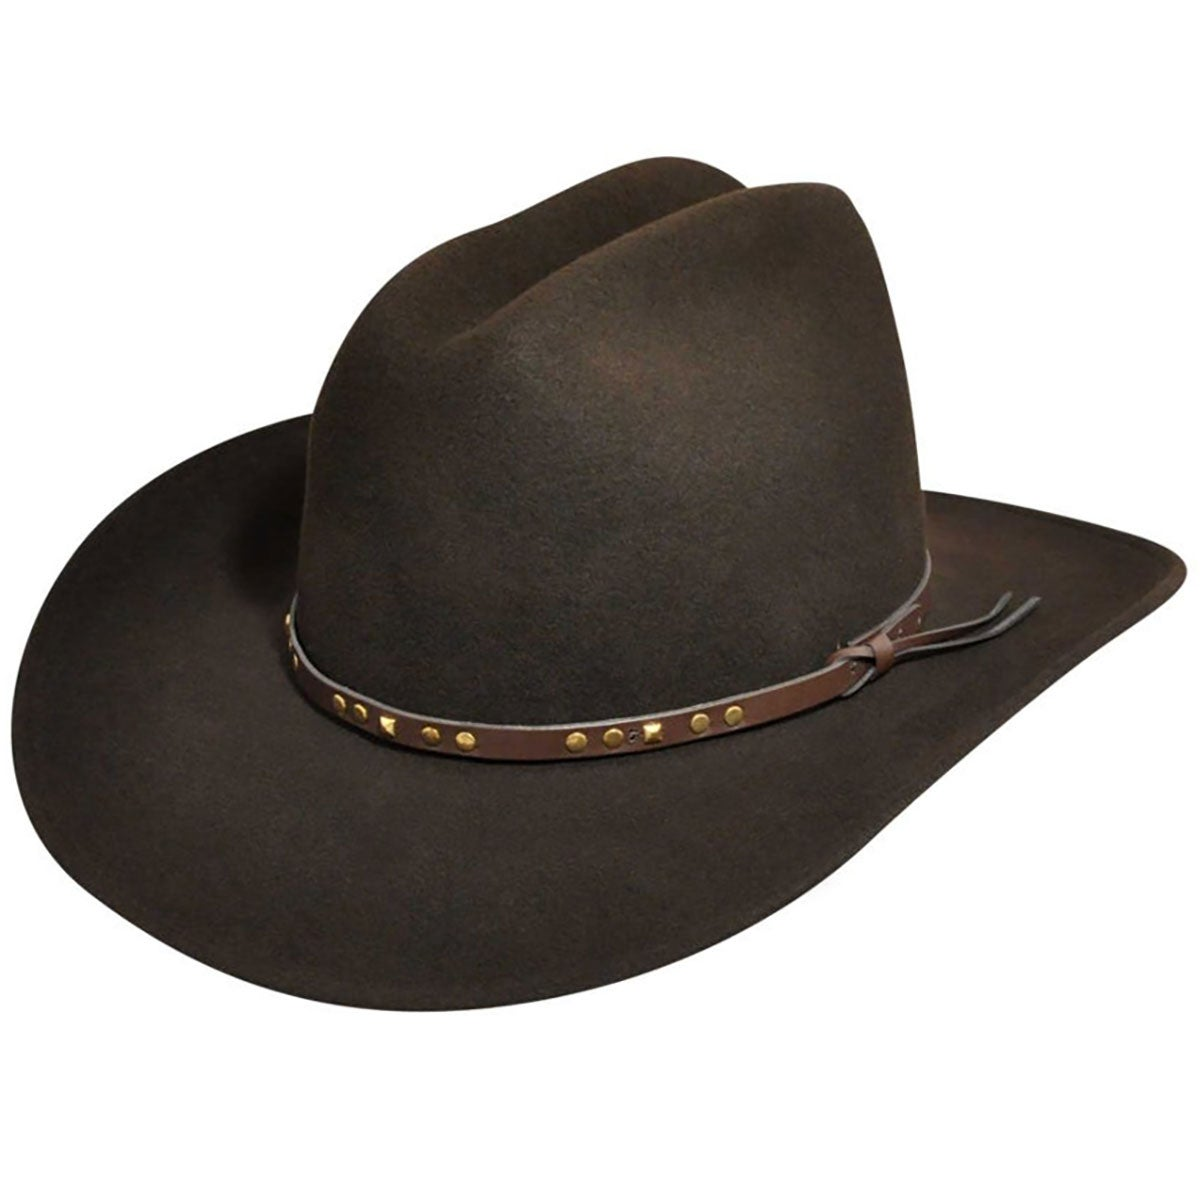 Wind River Wind River Chisolm Western Hat in Beaver